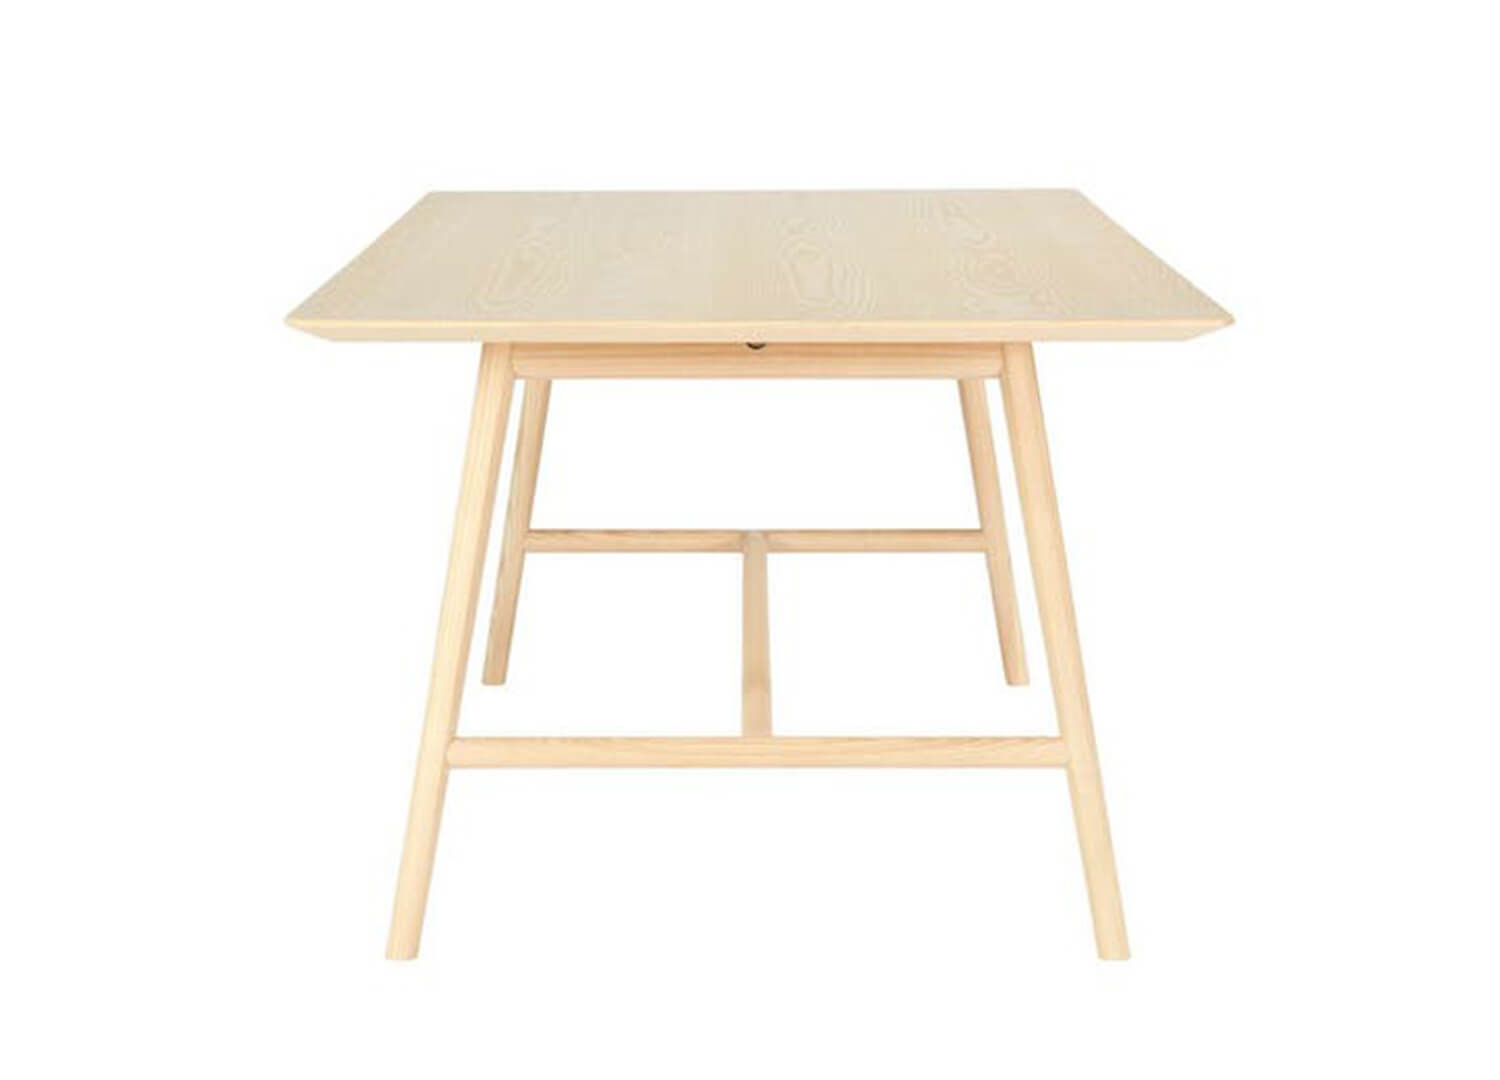 est living design directory holland table 280 SP01 space.01